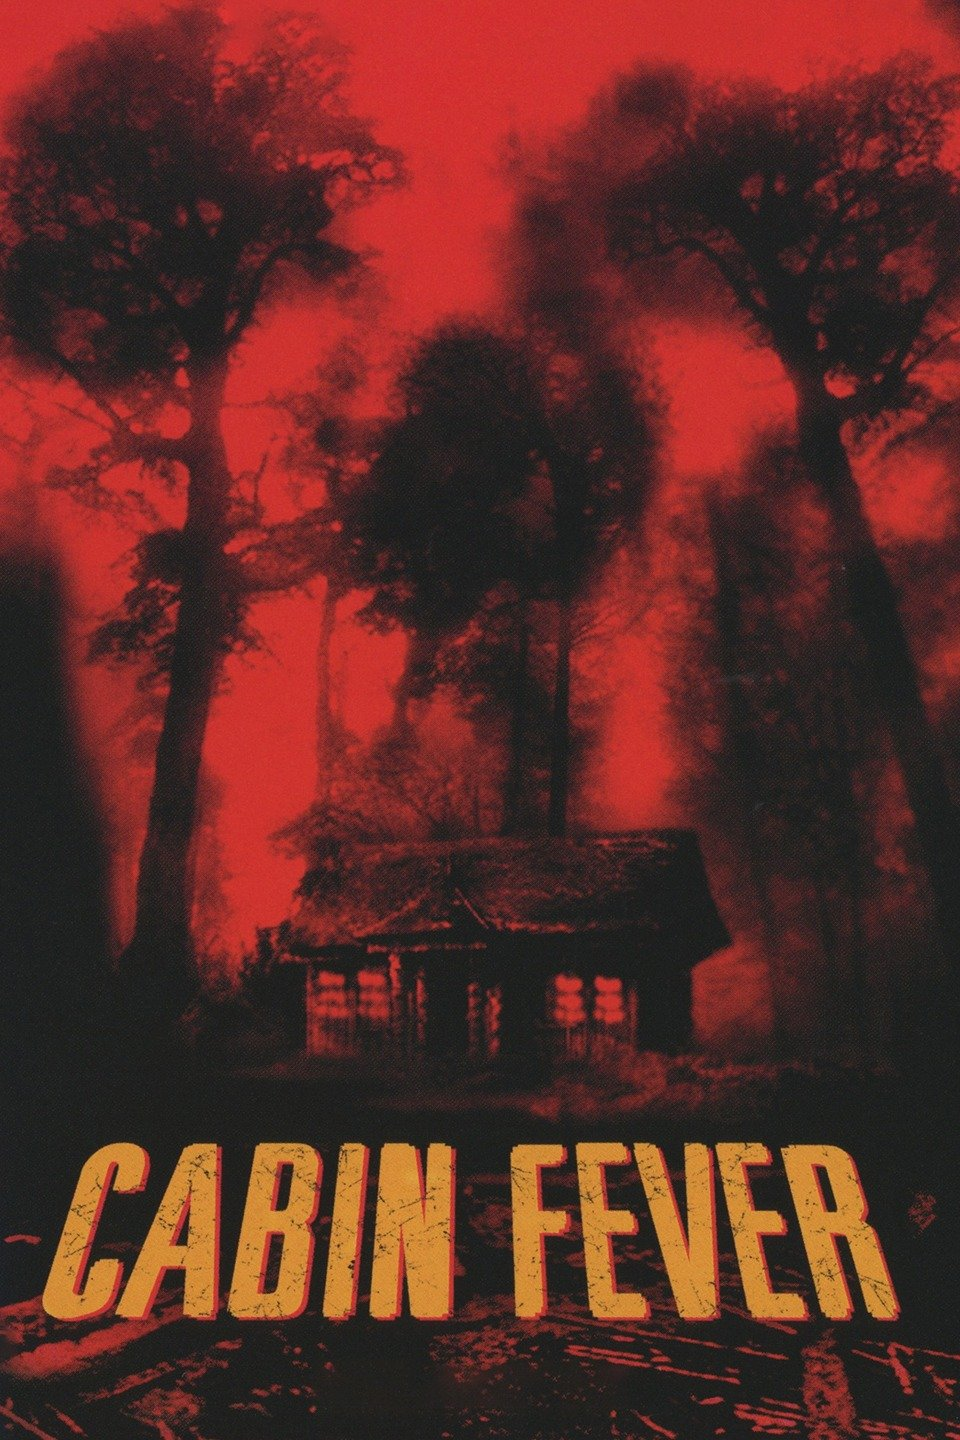 Cabin Fever (2002) - Directed by: Eli RothStarring: Jordan Ladd, Rider Strong, James DeBello, Cerina Vincent, Joey KernRated: R for Strong Violence and Gore, Sexuality, Language and Brief Drug UseRunning Time: 1 h 33 mTMM Score: 3 stars out of 5STRENGTHS: Meta Feeling, Some WritingWEAKNESSES: Acting, Most Writing, Flat Direction and Cinematography